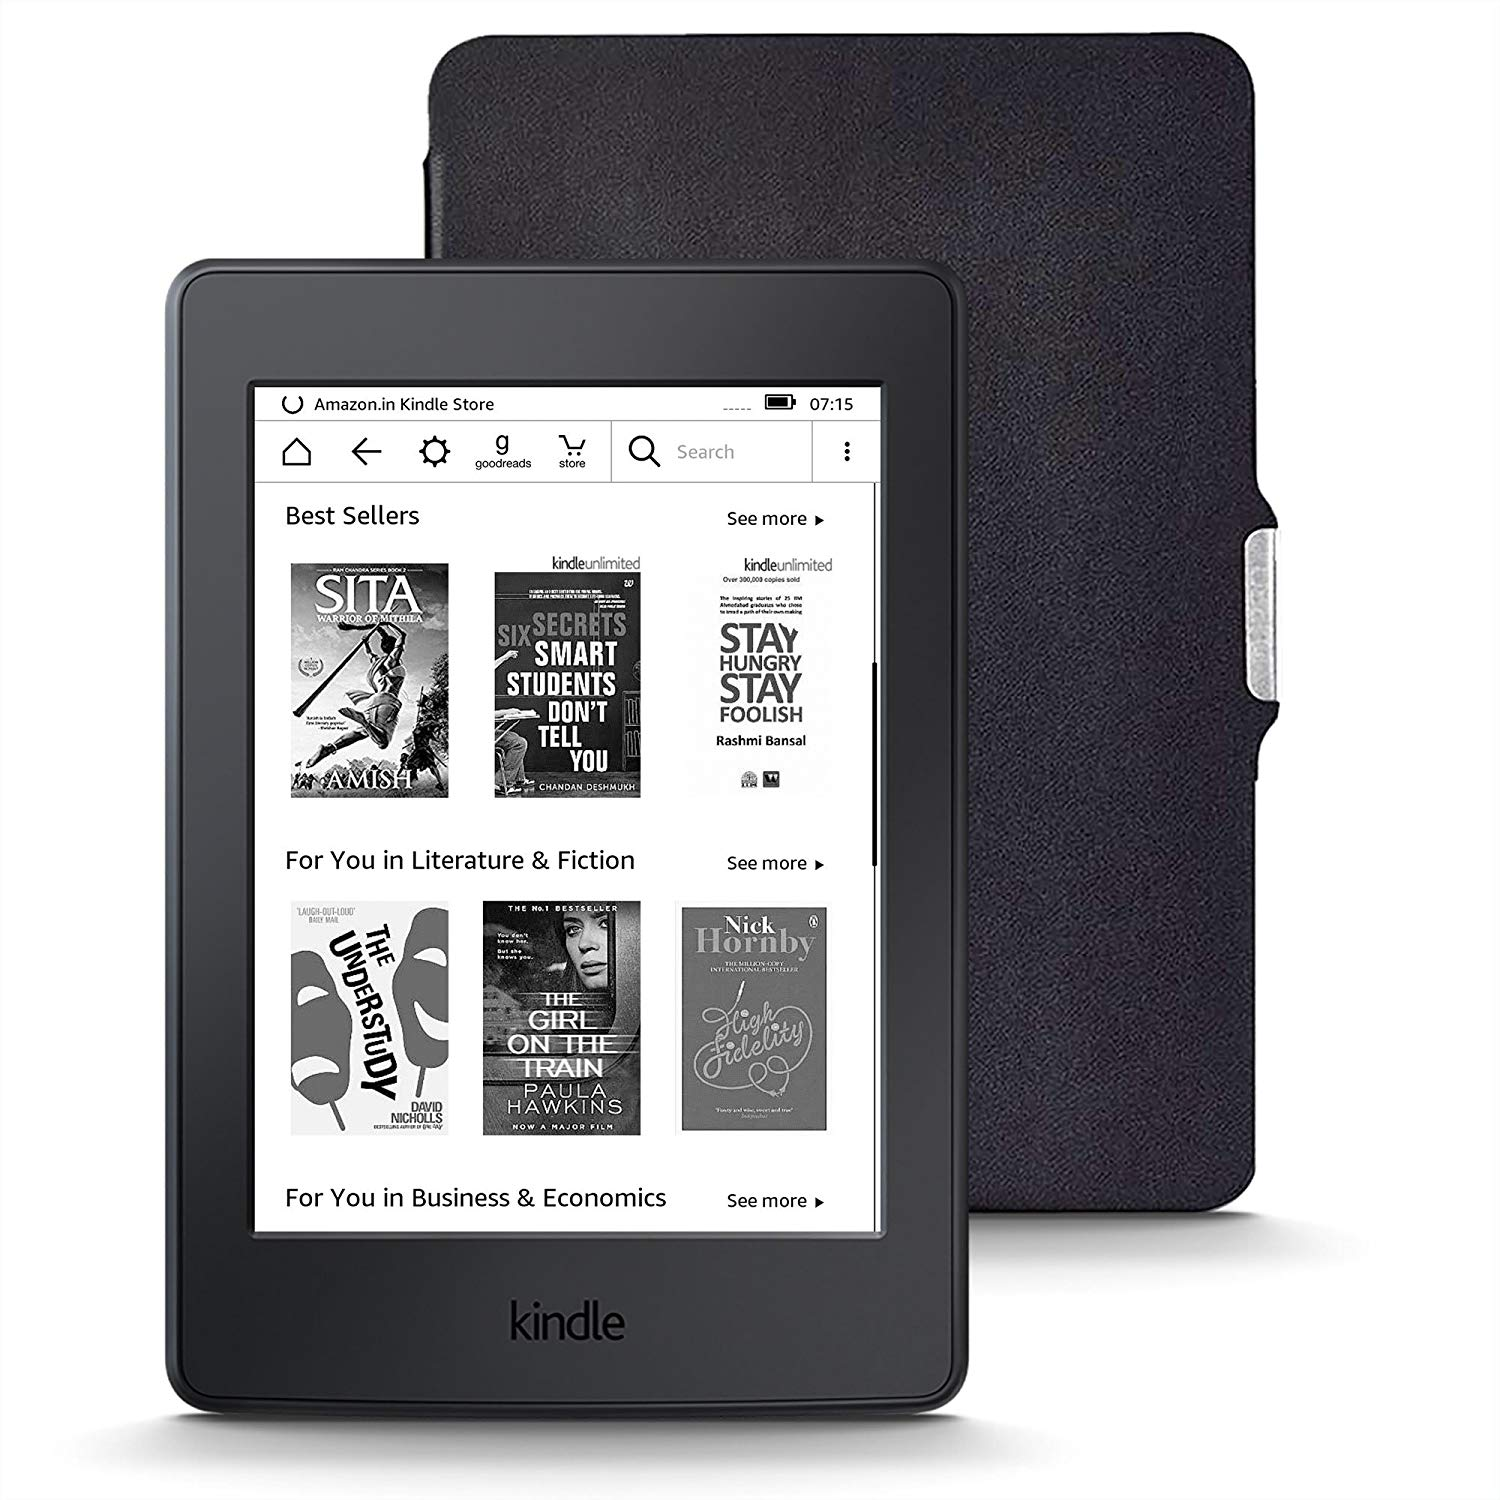 Kindle Starter Pack with Kindle Paperwhite WiFi E-Reader in Black (MRP Rs 10,999), NuPro SlimFit Cover for Kindle Paperwhite (MRP Rs 1,299)